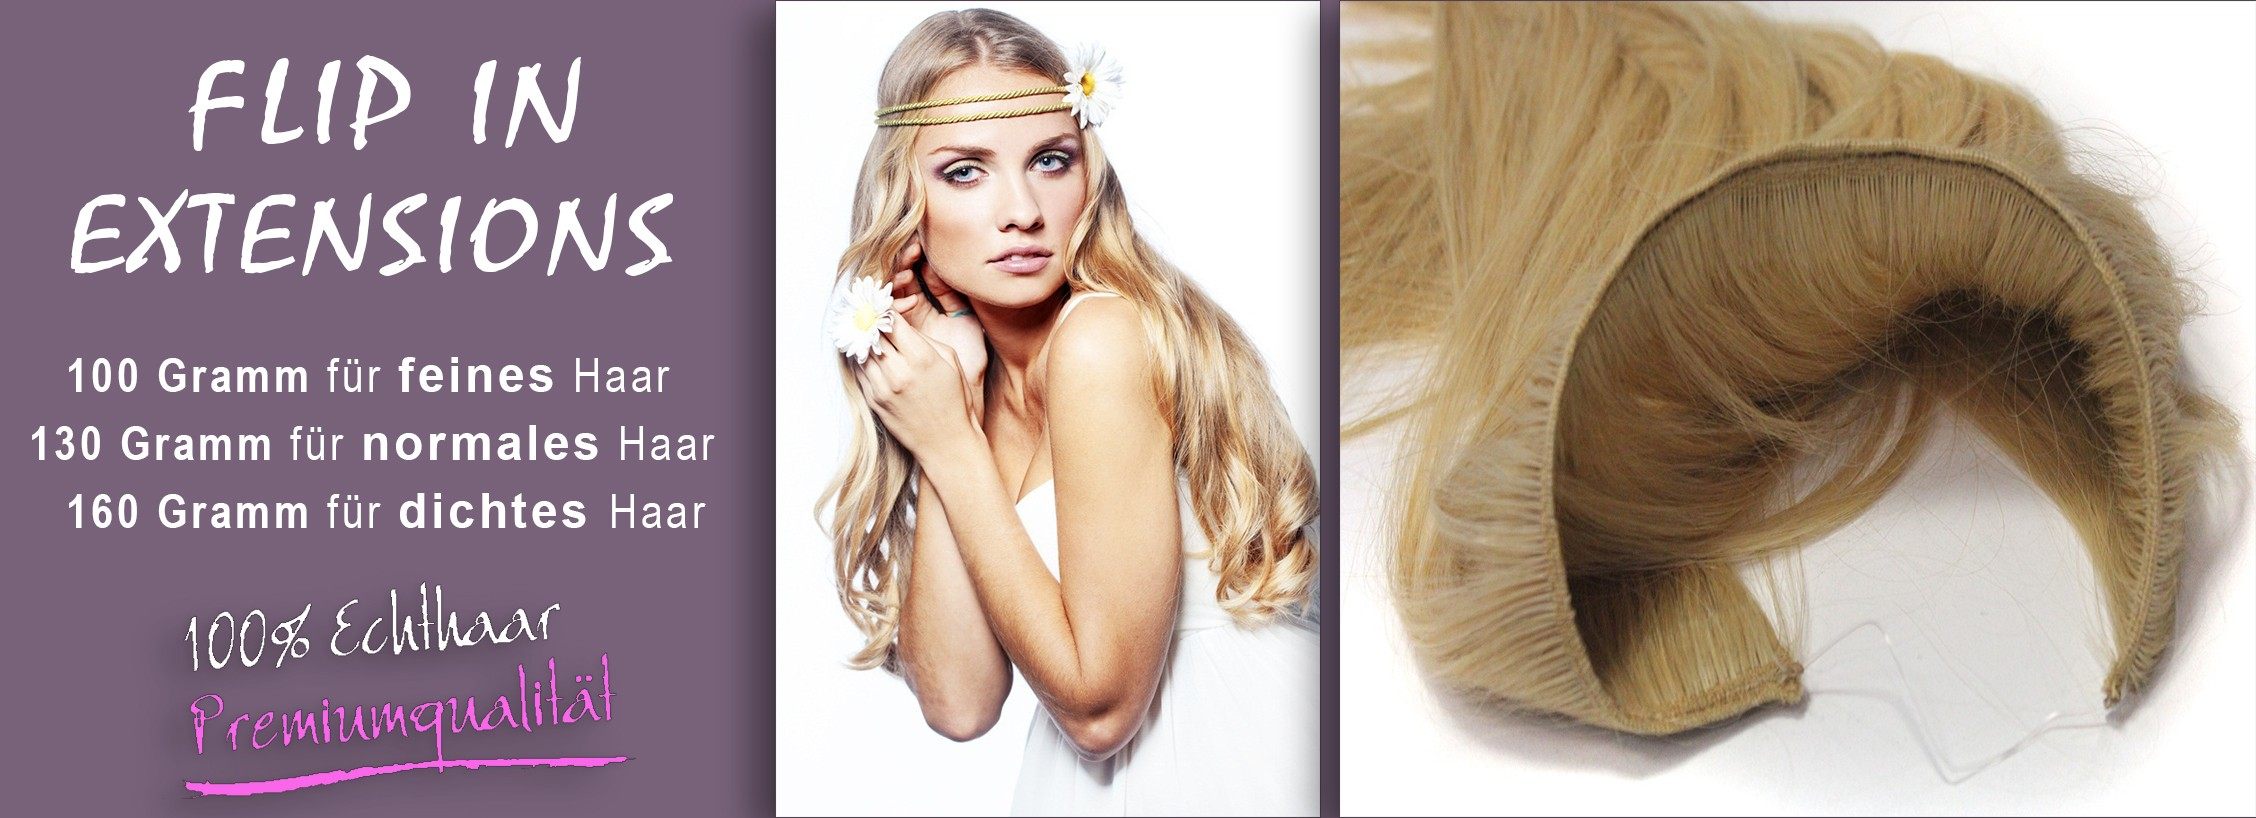 FLIP IN EXTENSIONS 100% ECHTHAAR